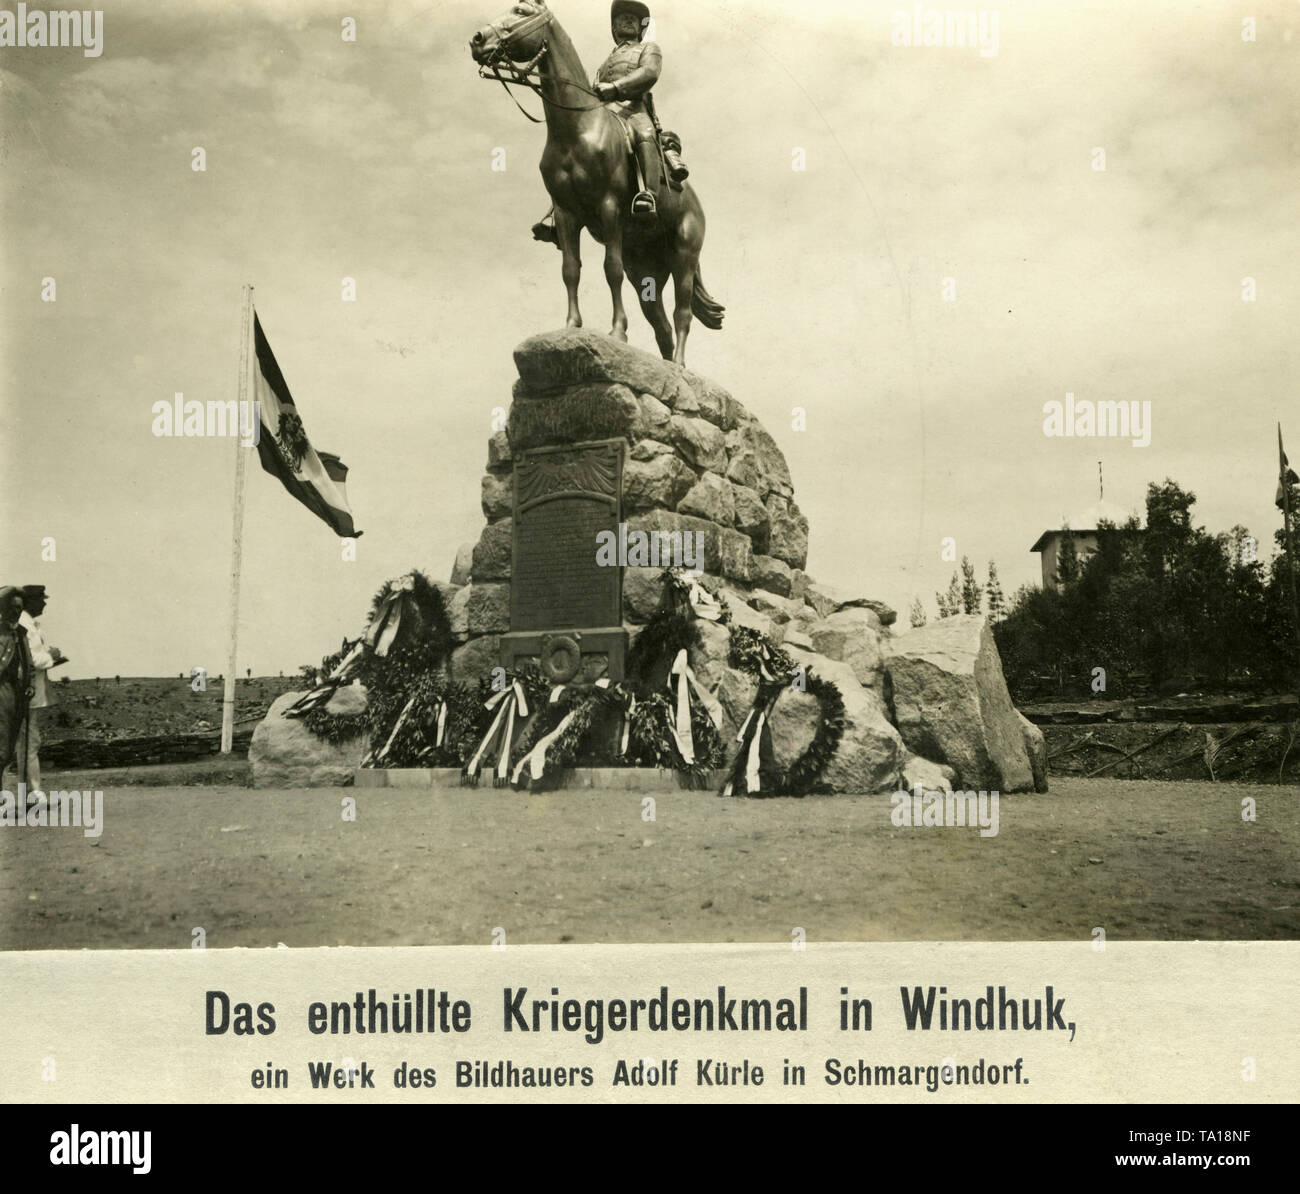 The equestrian statue is a war memorial by Adolf Kuerle and is intended to commemorate all Germans who lost their lives in the suppression of the rebellions of the Herero and Hottentots. The monument stands in Windhoek, German South West Africa and was inaugurated in 1912. - Stock Image